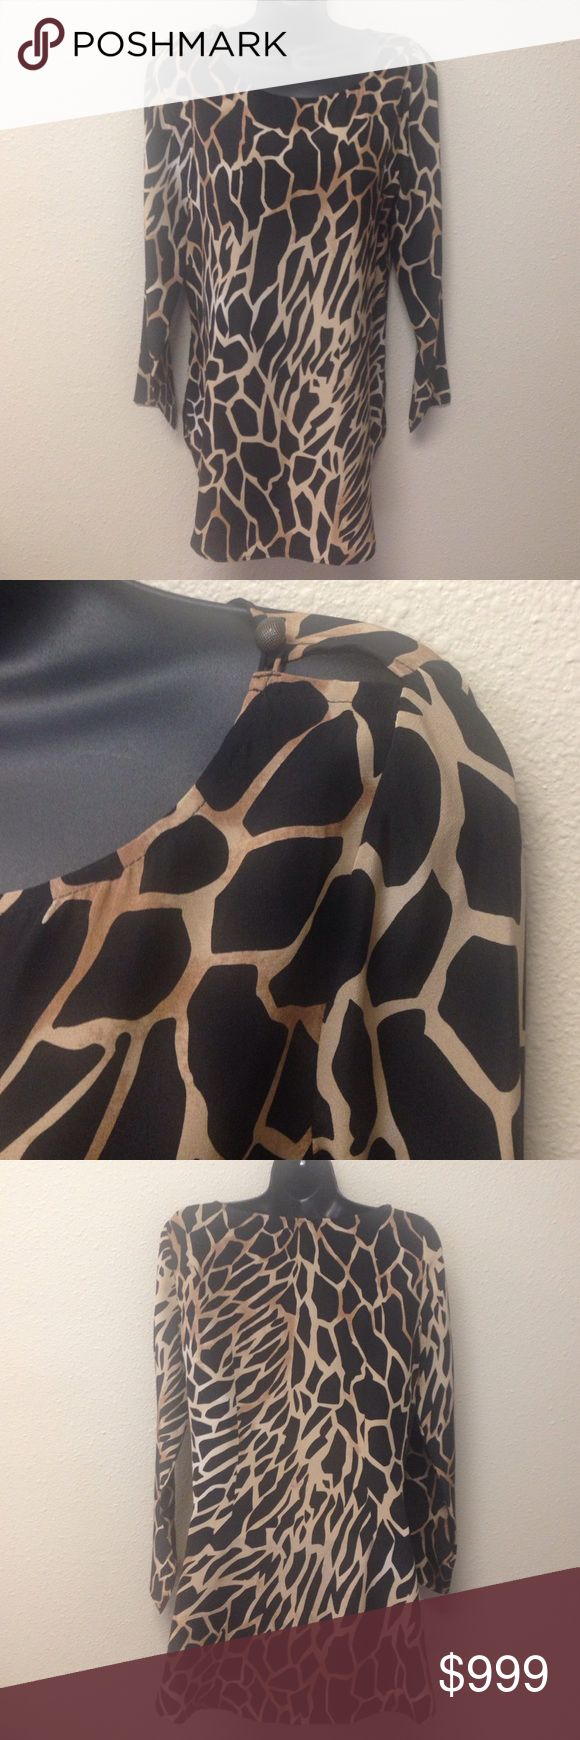 """Neiman Marcus Exclusive 100% Silk Tunic or Dress Perfect condition.  Neiman Marcus Exclusive.  Black and tan animal print dress or tunic.  100% Silk, cute button detail at each shoulder, long sleeves, rounded hem with side slits, crew neck.  Approx measurements laying flat:  chest 18.5"""", length 30"""". Neiman Marcus Exclusive Dresses"""